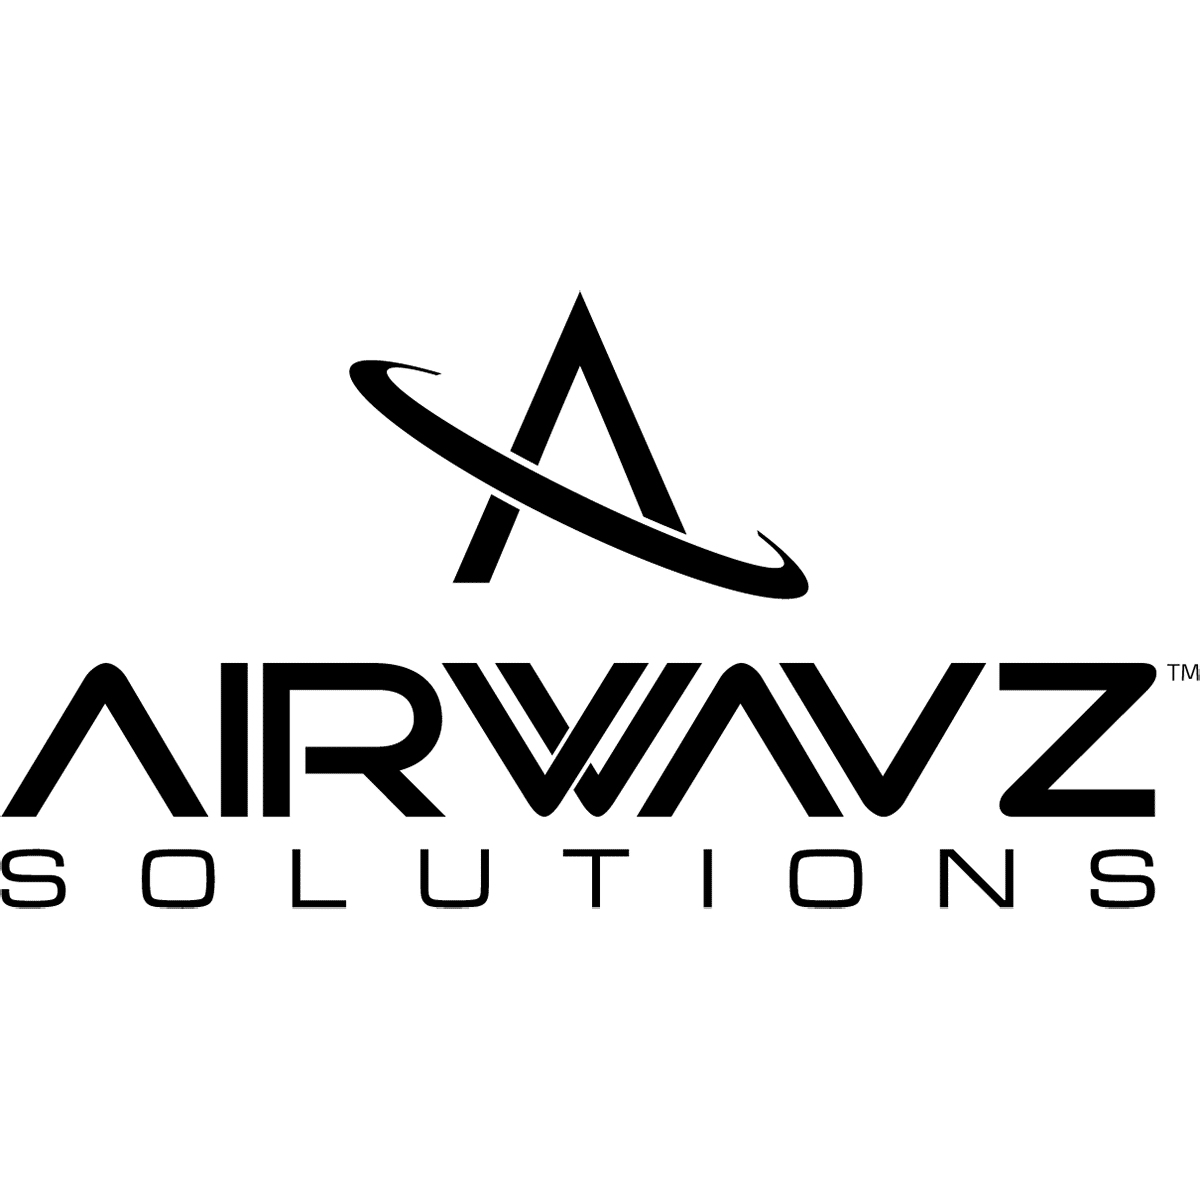 Airwavz, Globalstar Reach Agreement To Use Band 53 For CRE Services